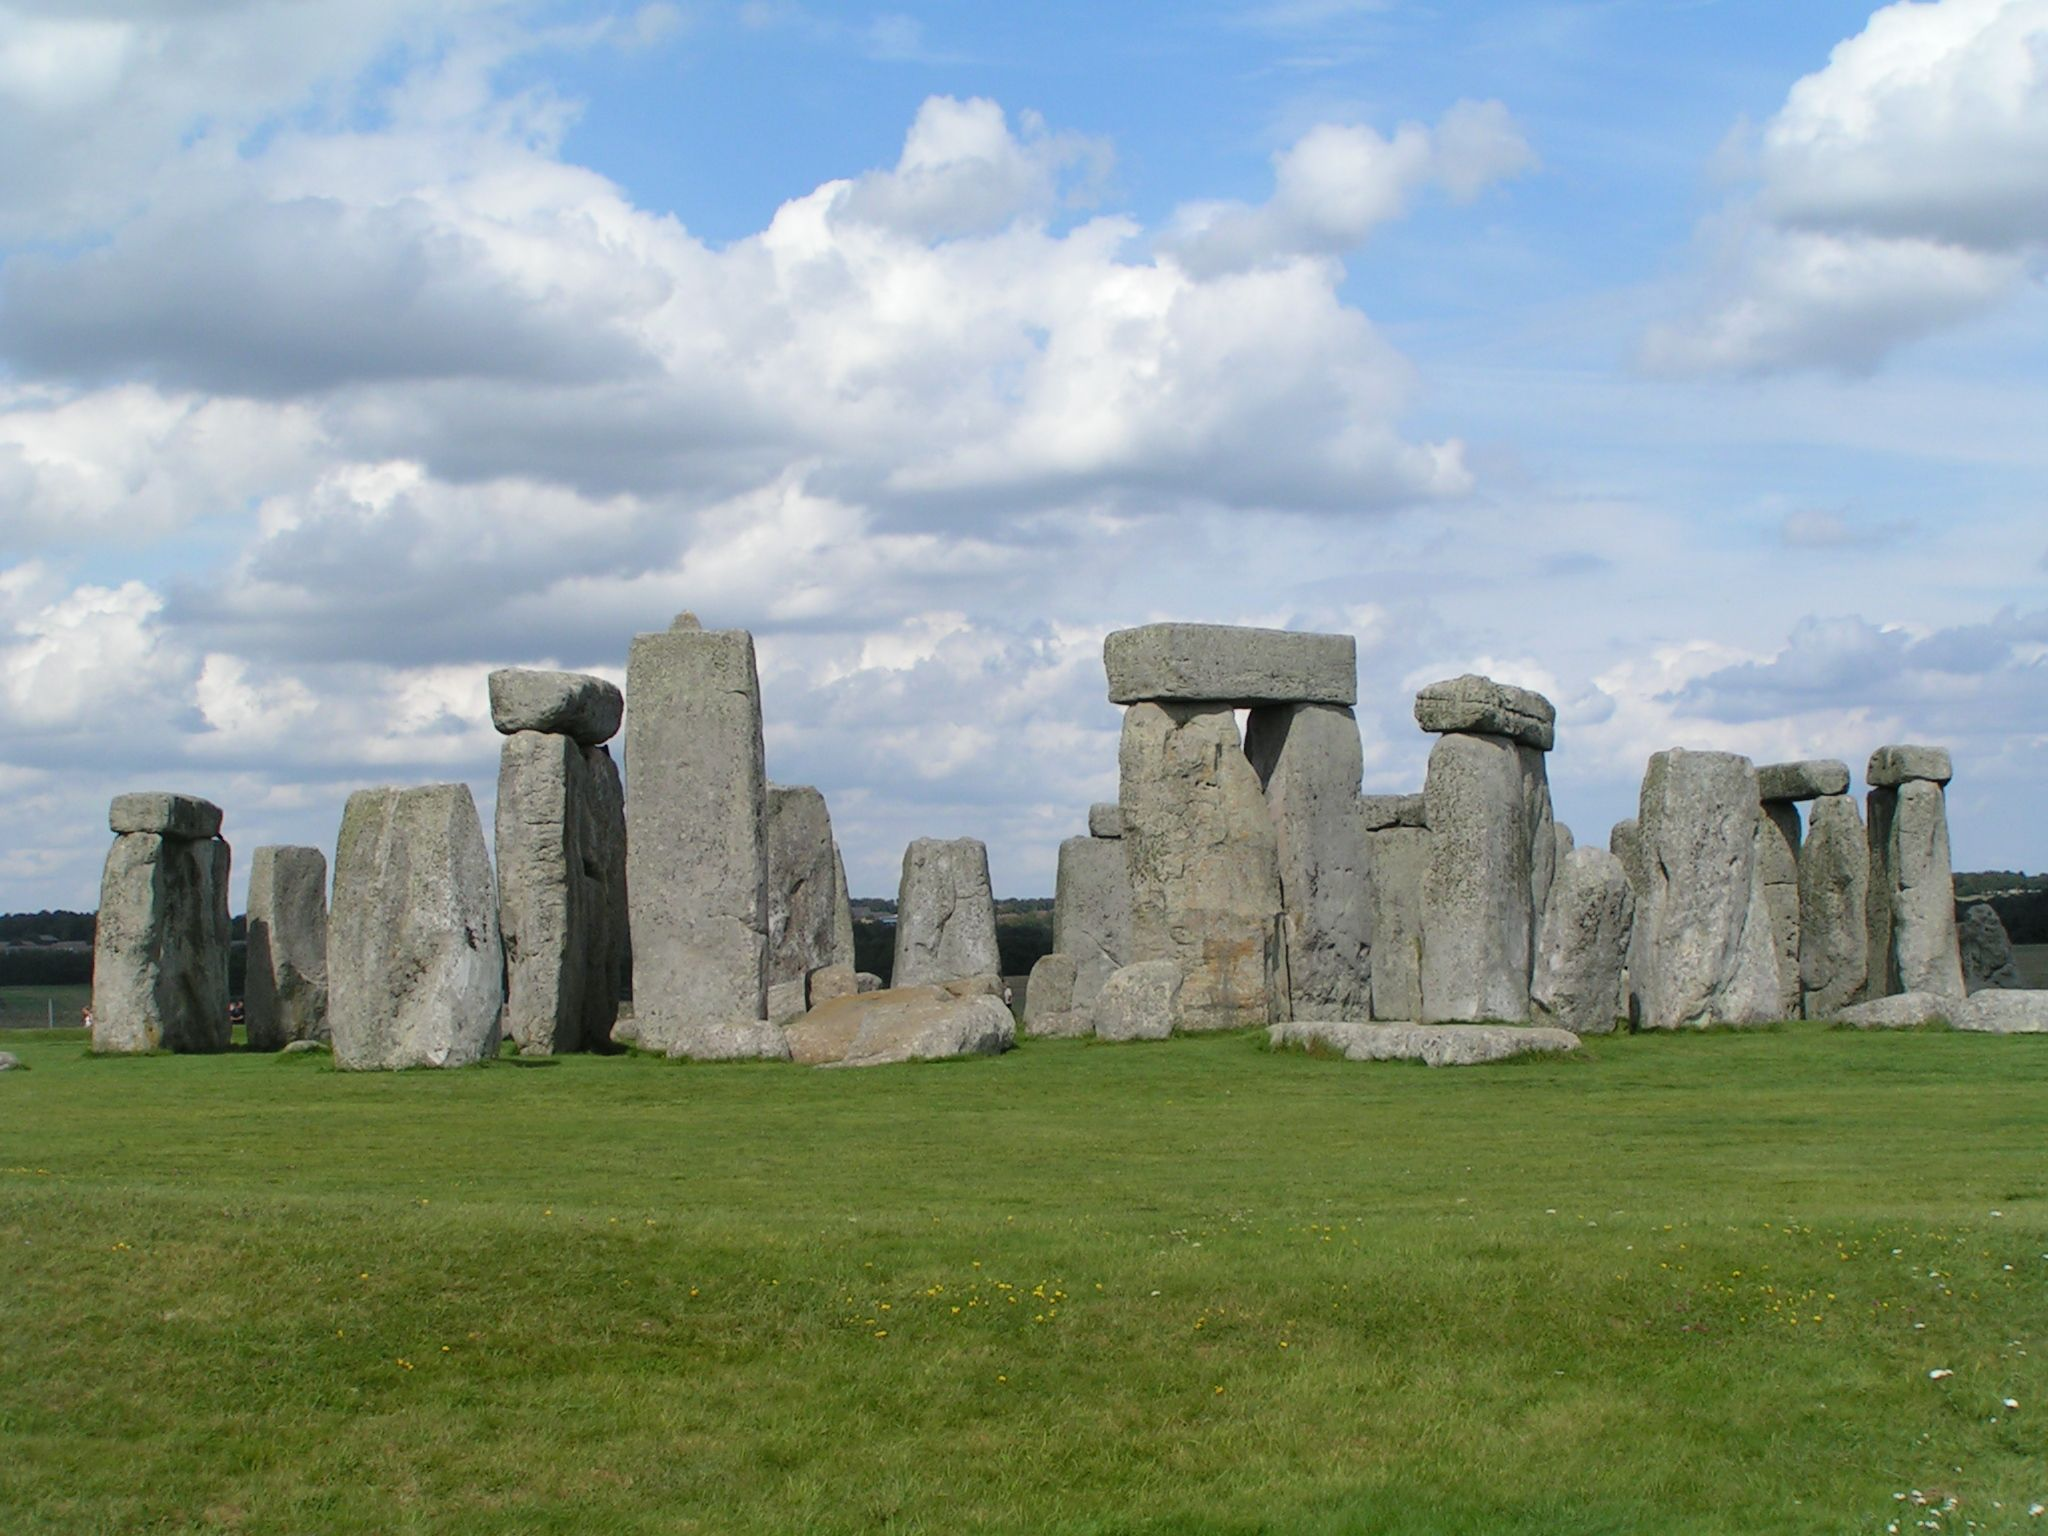 Gemini and Sagittarius – The Stonehenge Monolithic Circle